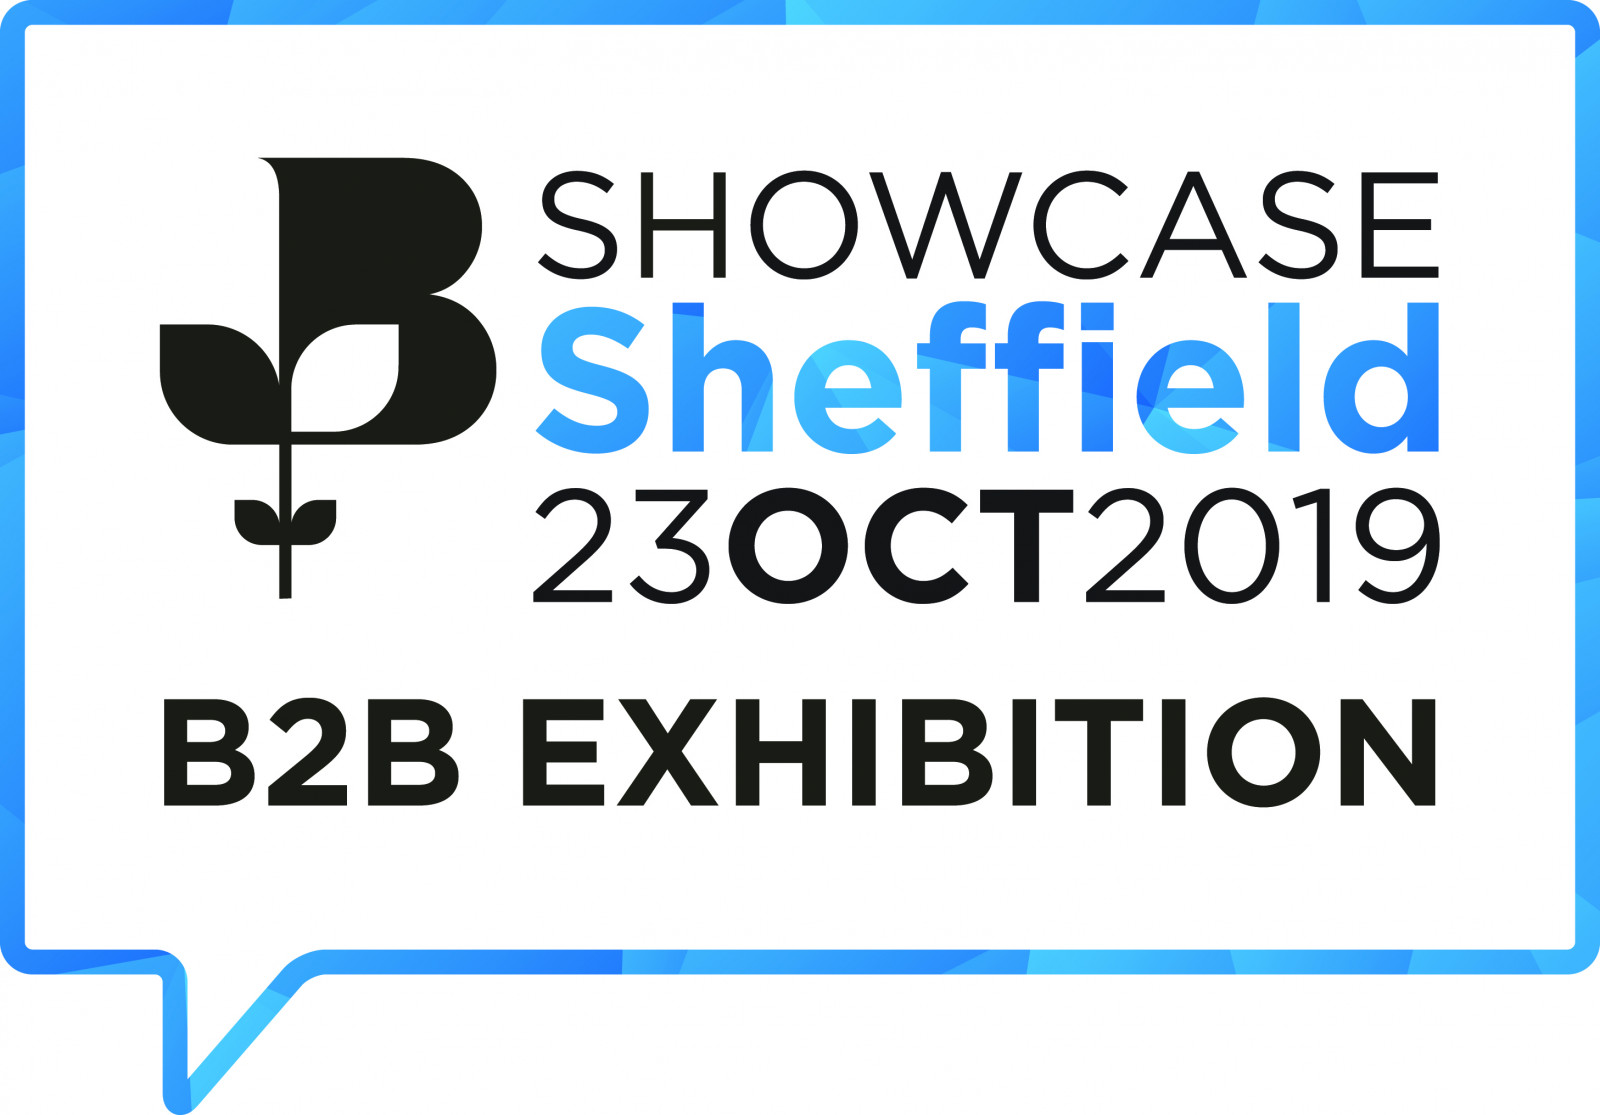 Showcase Sheffield 2019 -